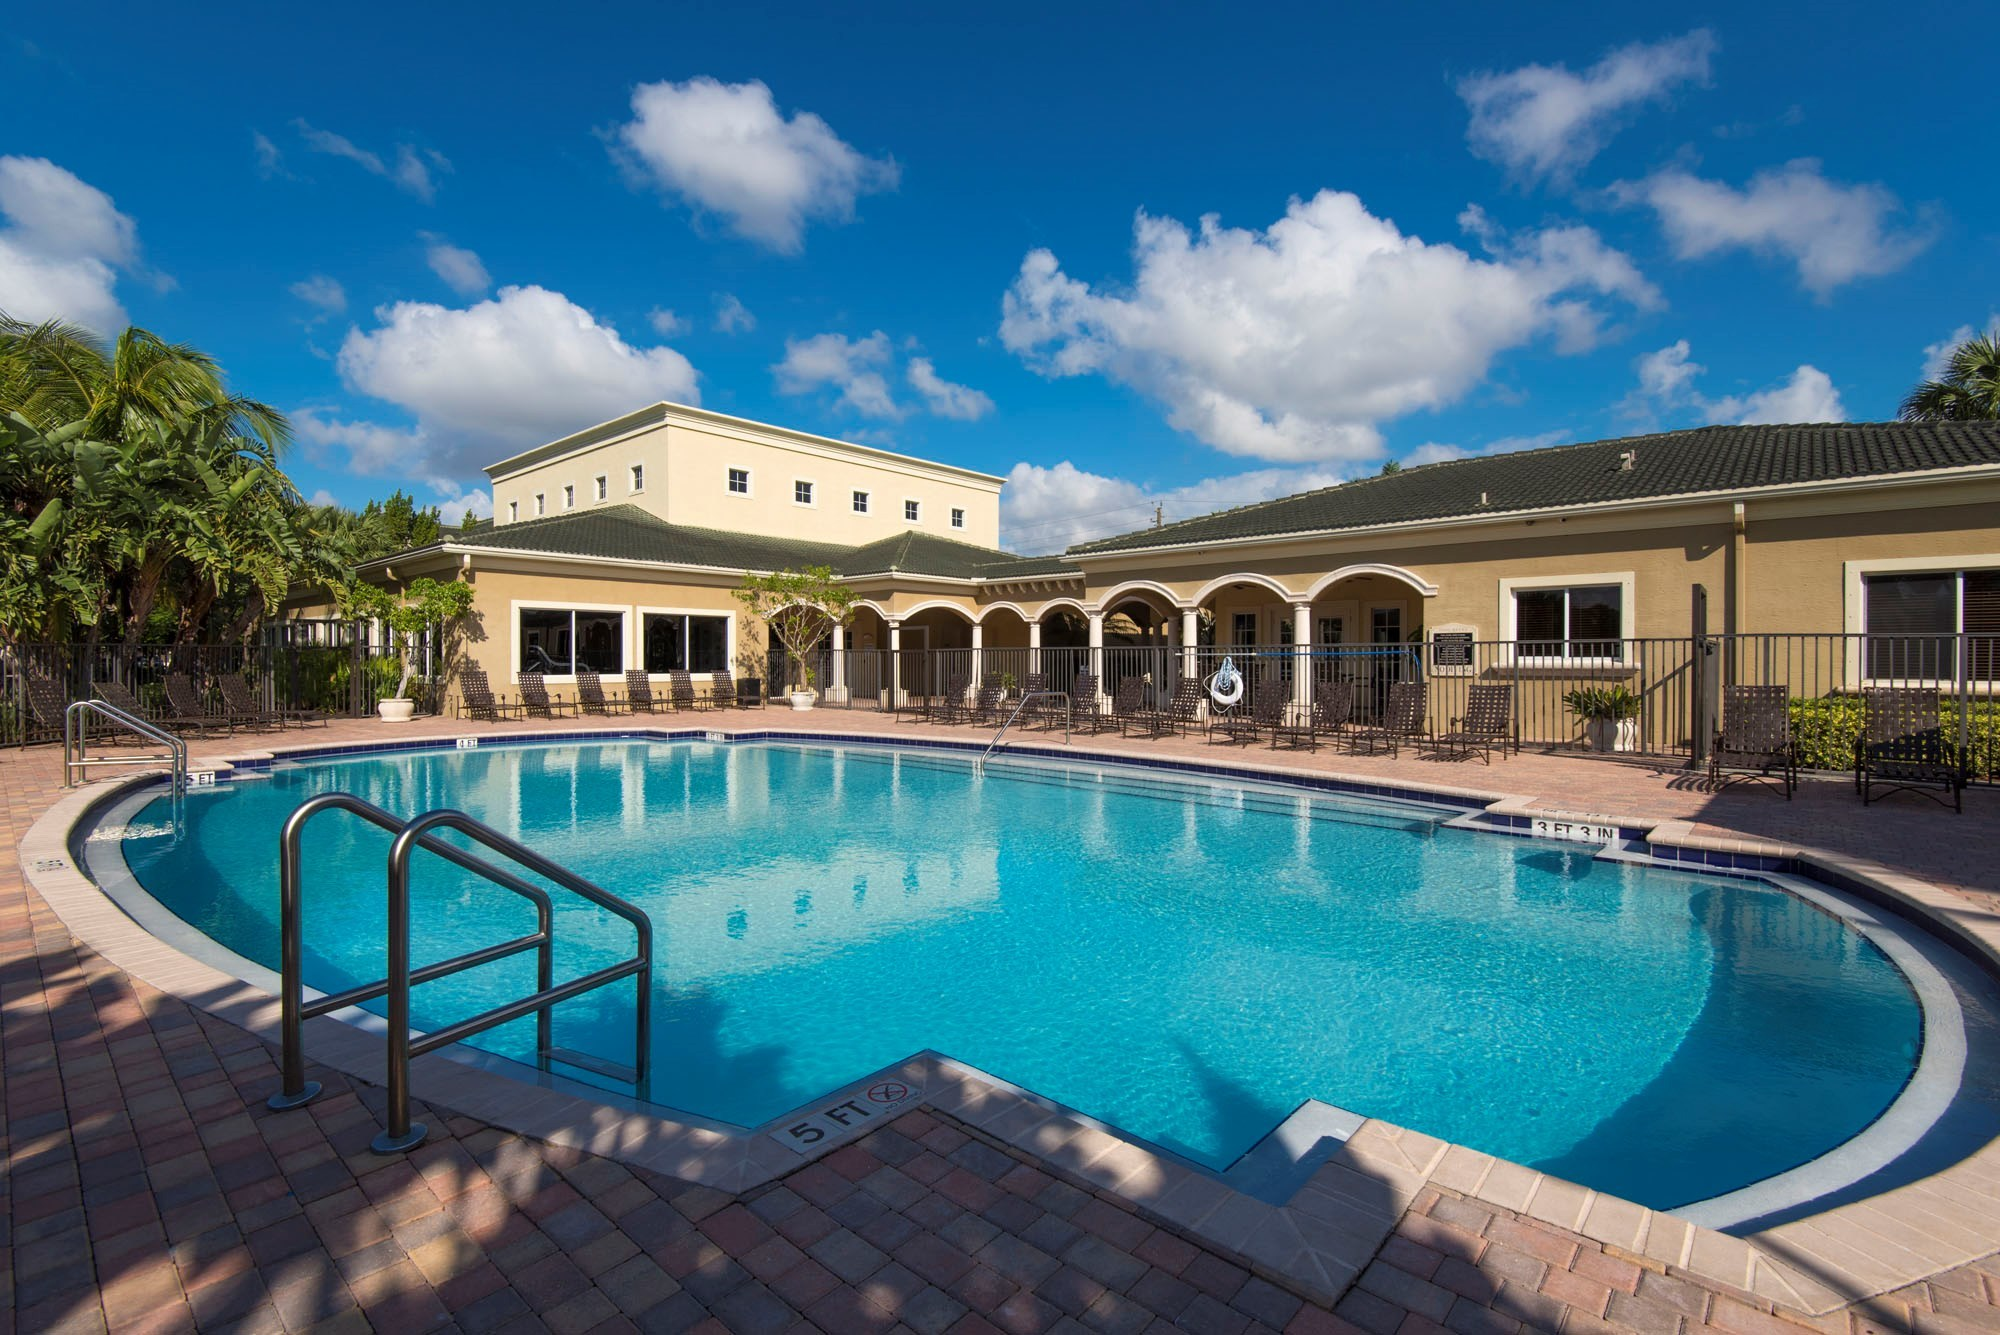 Palm Trace Landings - Live in one of the coziest apartments in Davie, FL and surround yourself with beautiful landscaping, charming homes, and thoughtful amenities